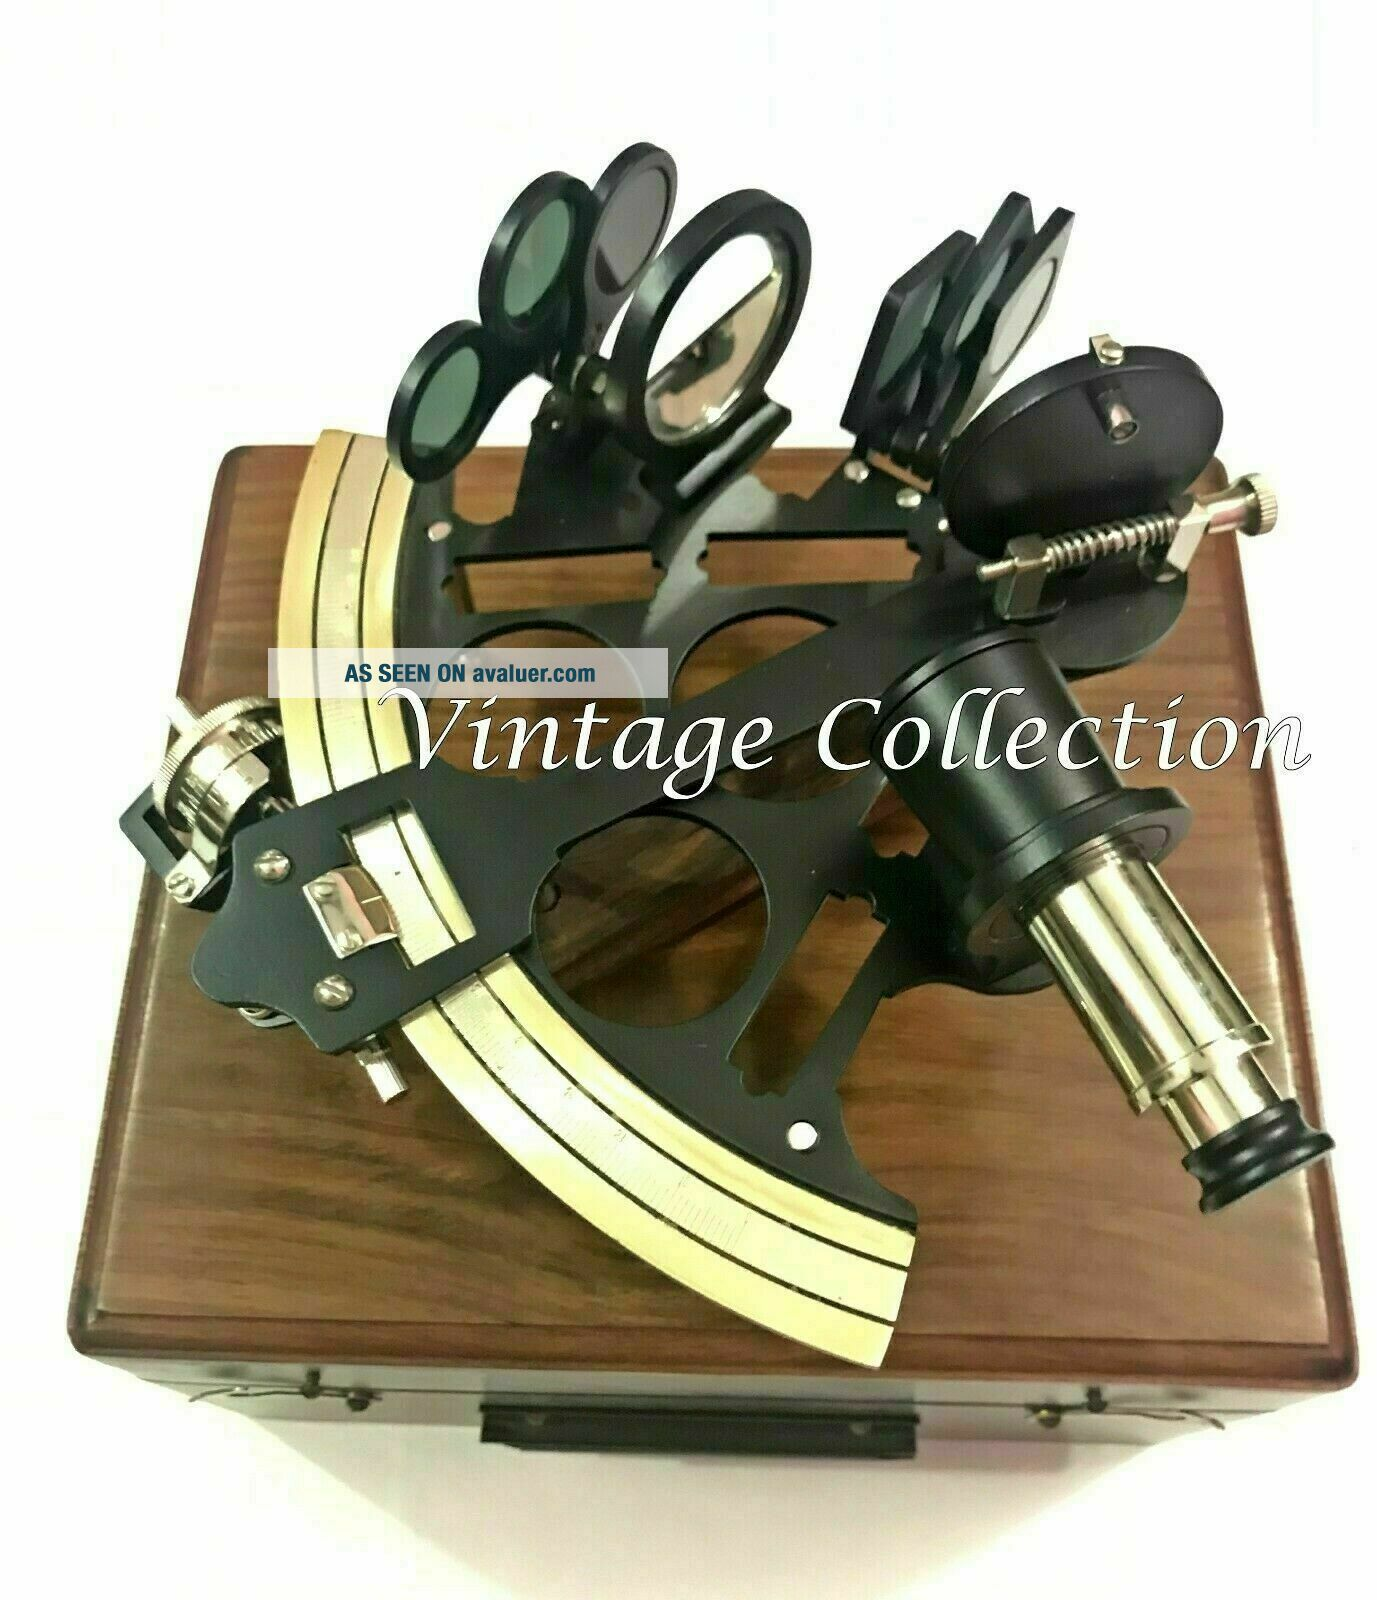 VINTAGE SOLID BRASS NAUTICAL SHIP INSTRUMENT ASTROLABE MARINE SEXTANT